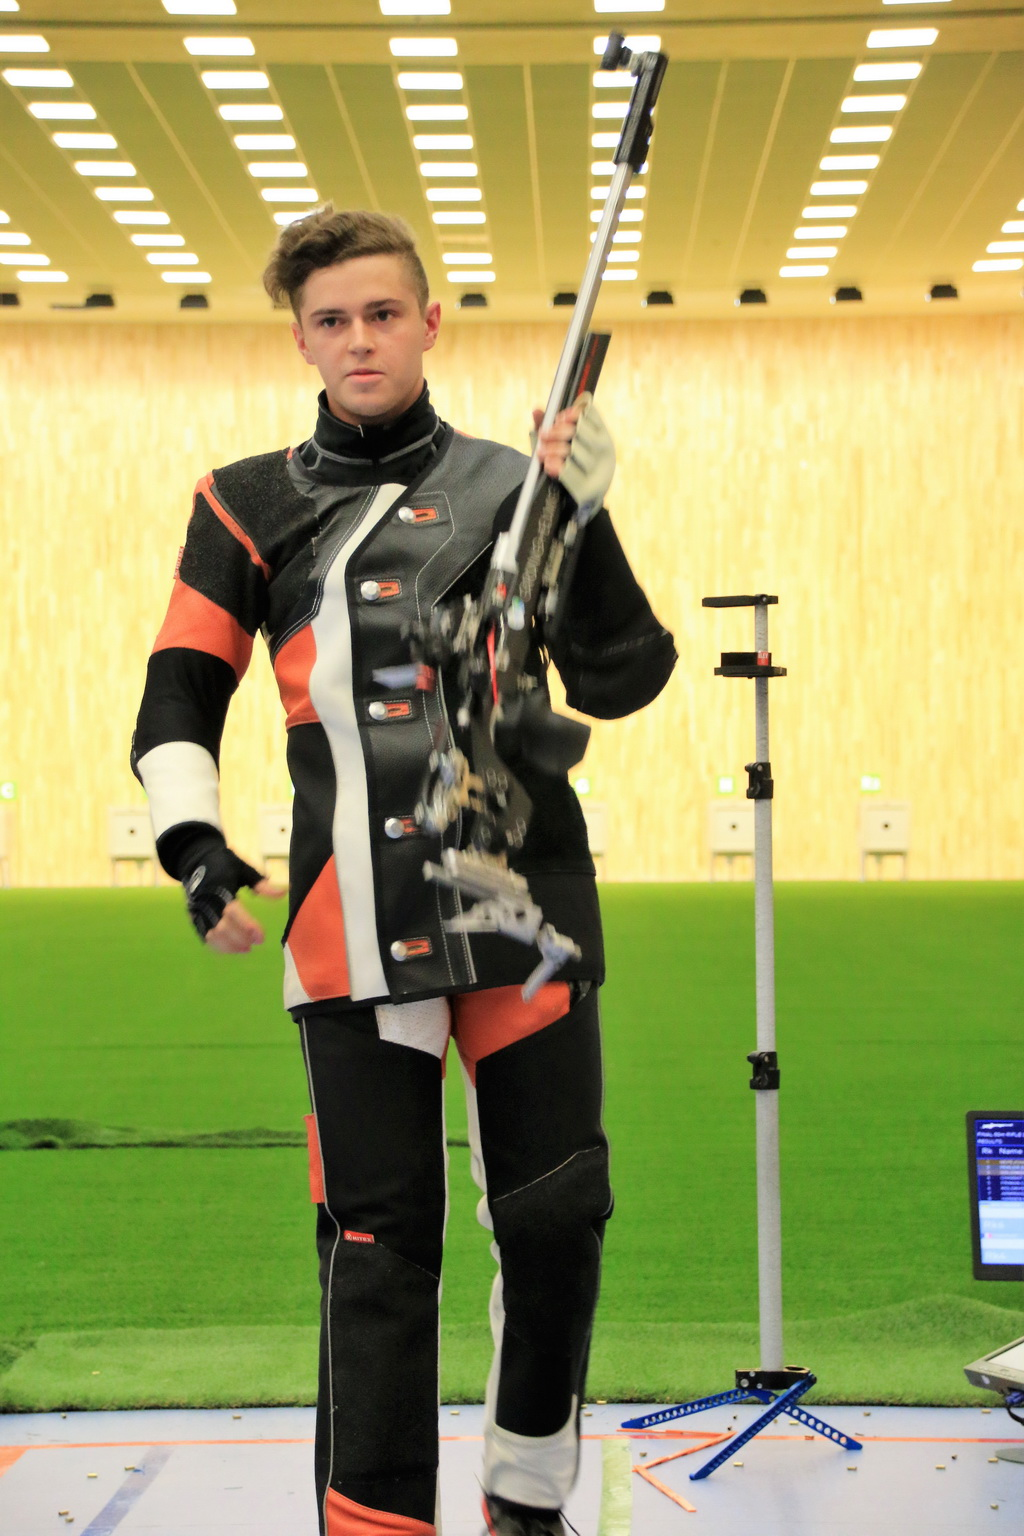 Nepejchal's triumph in Rifle 3 Positions Men Junior